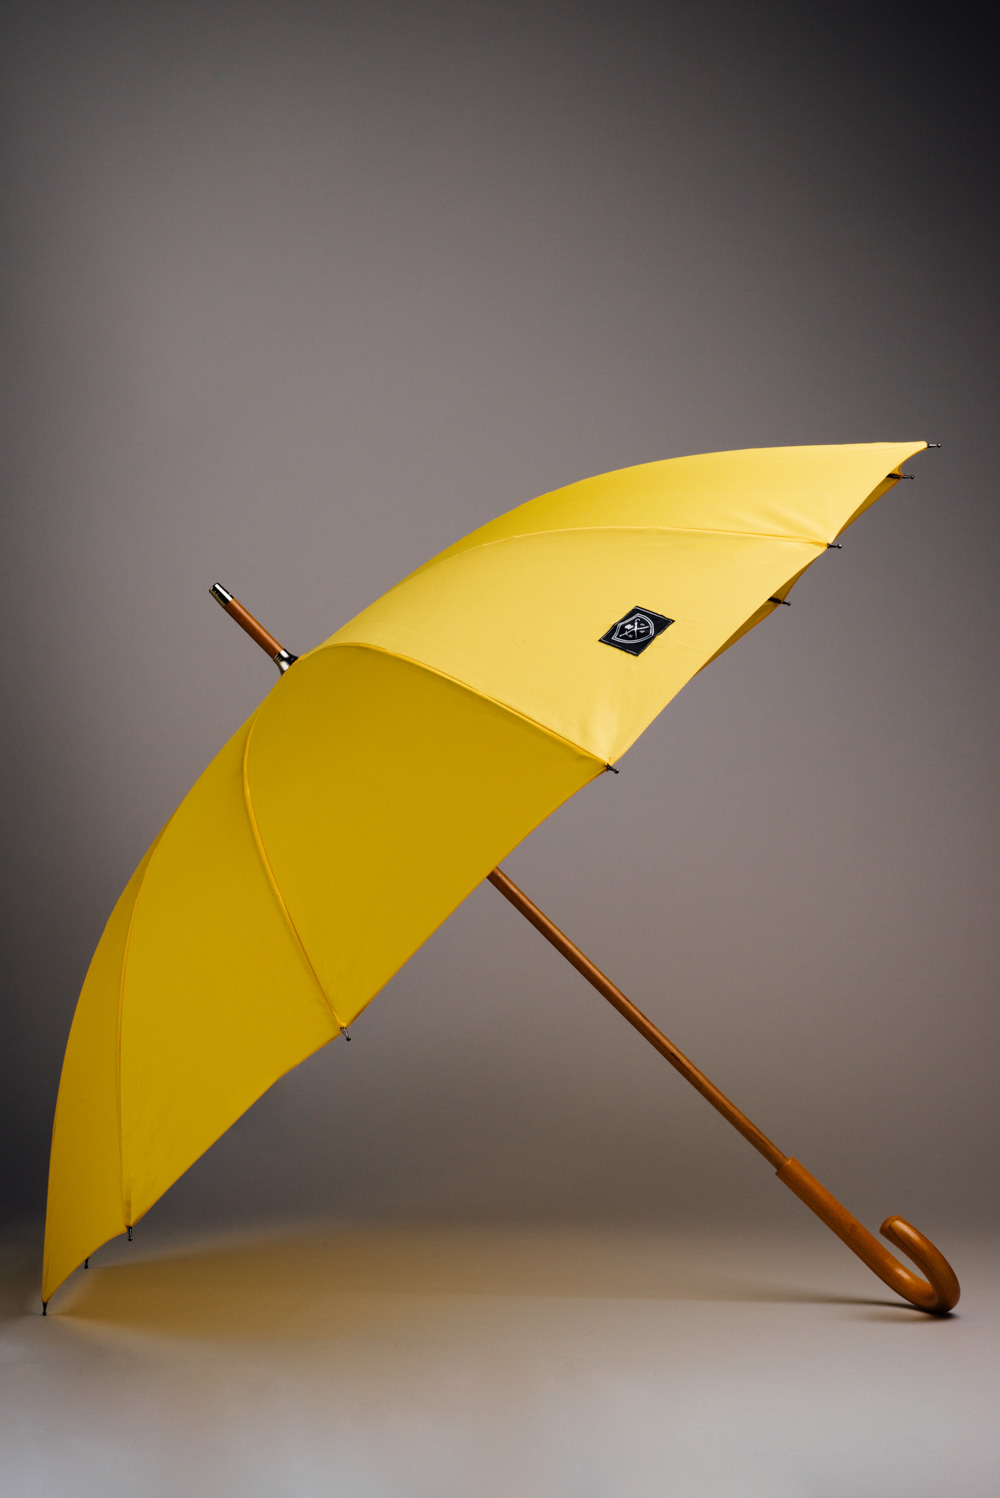 Classic Yellow umbrella with a wooden stick